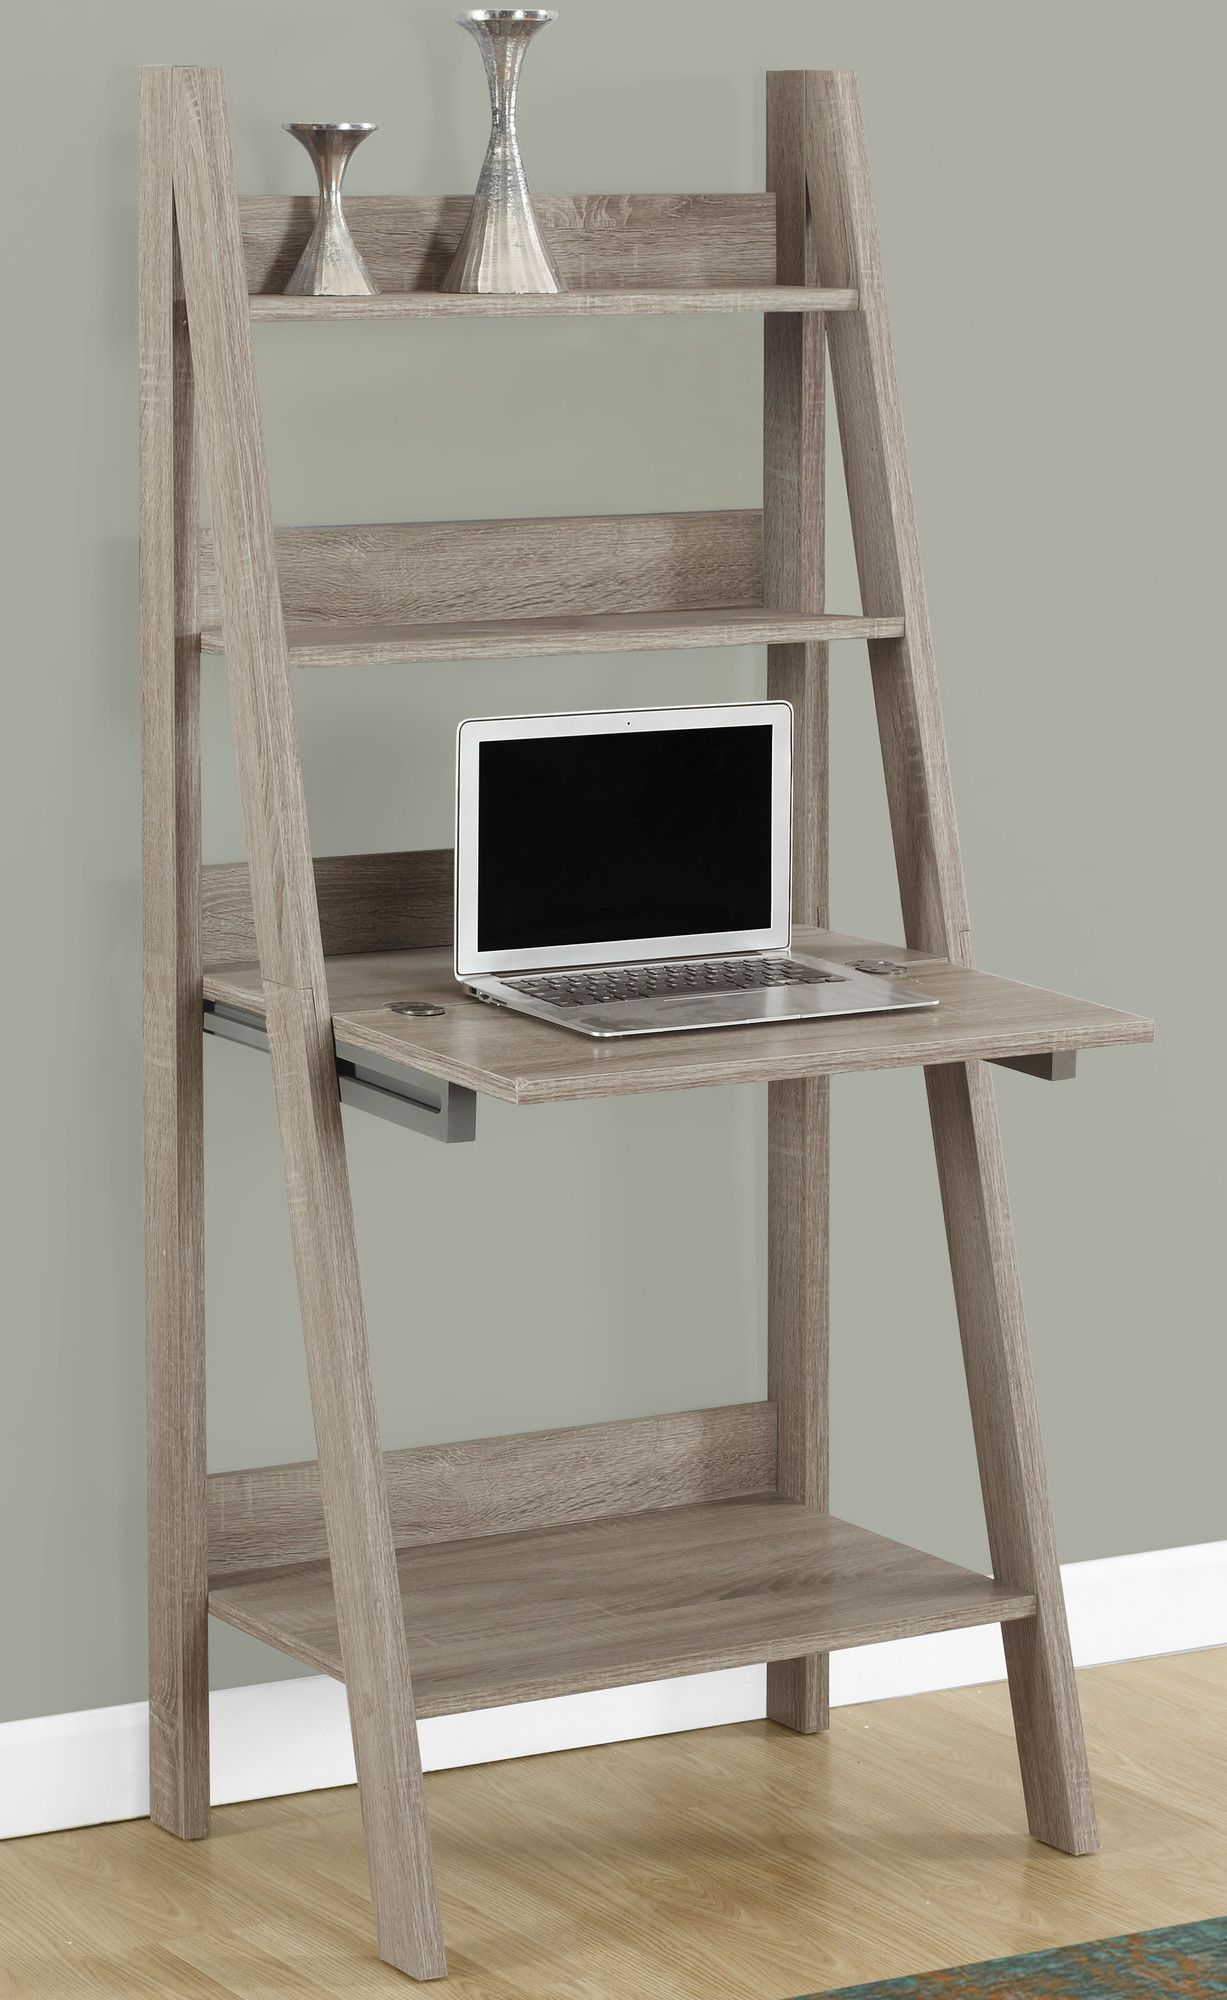 features ladder style shelves closed storage drops down to create work area ideal for. Black Bedroom Furniture Sets. Home Design Ideas